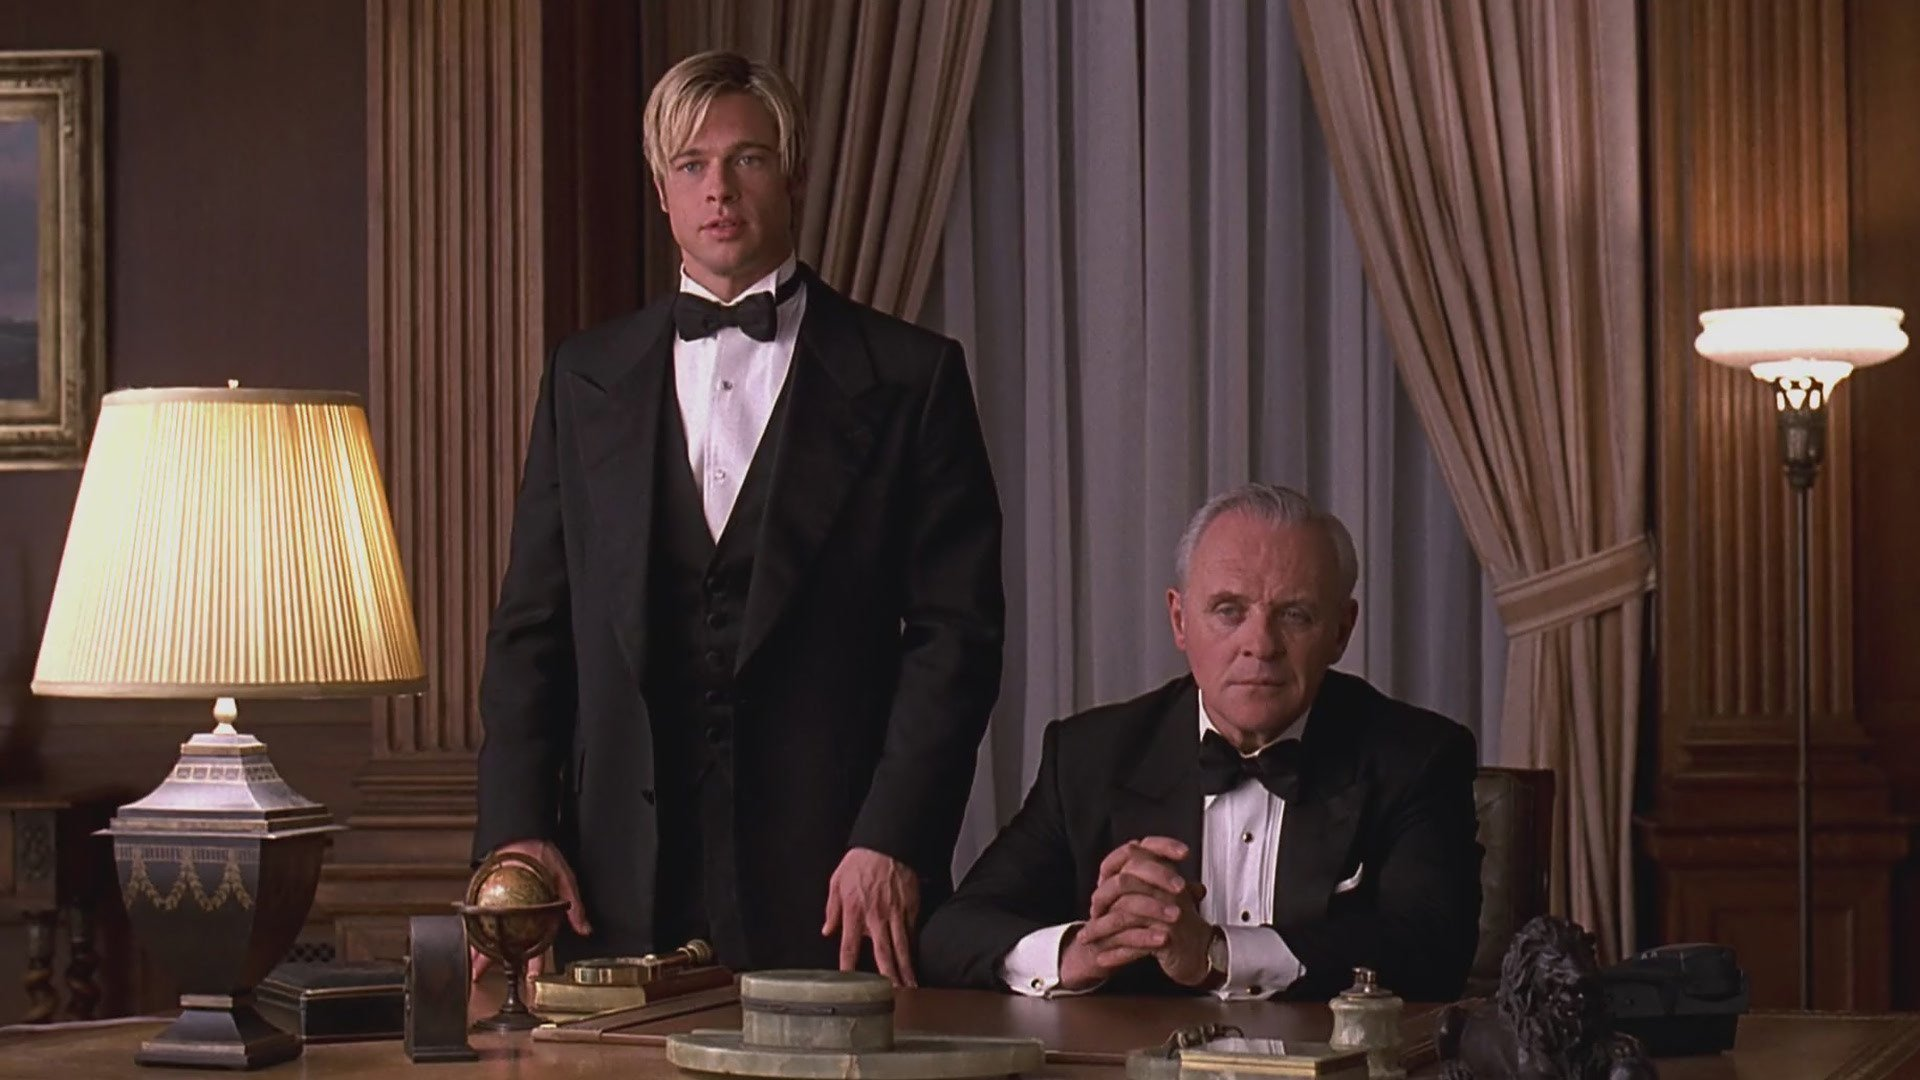 Bande originale rencontre avec joe black